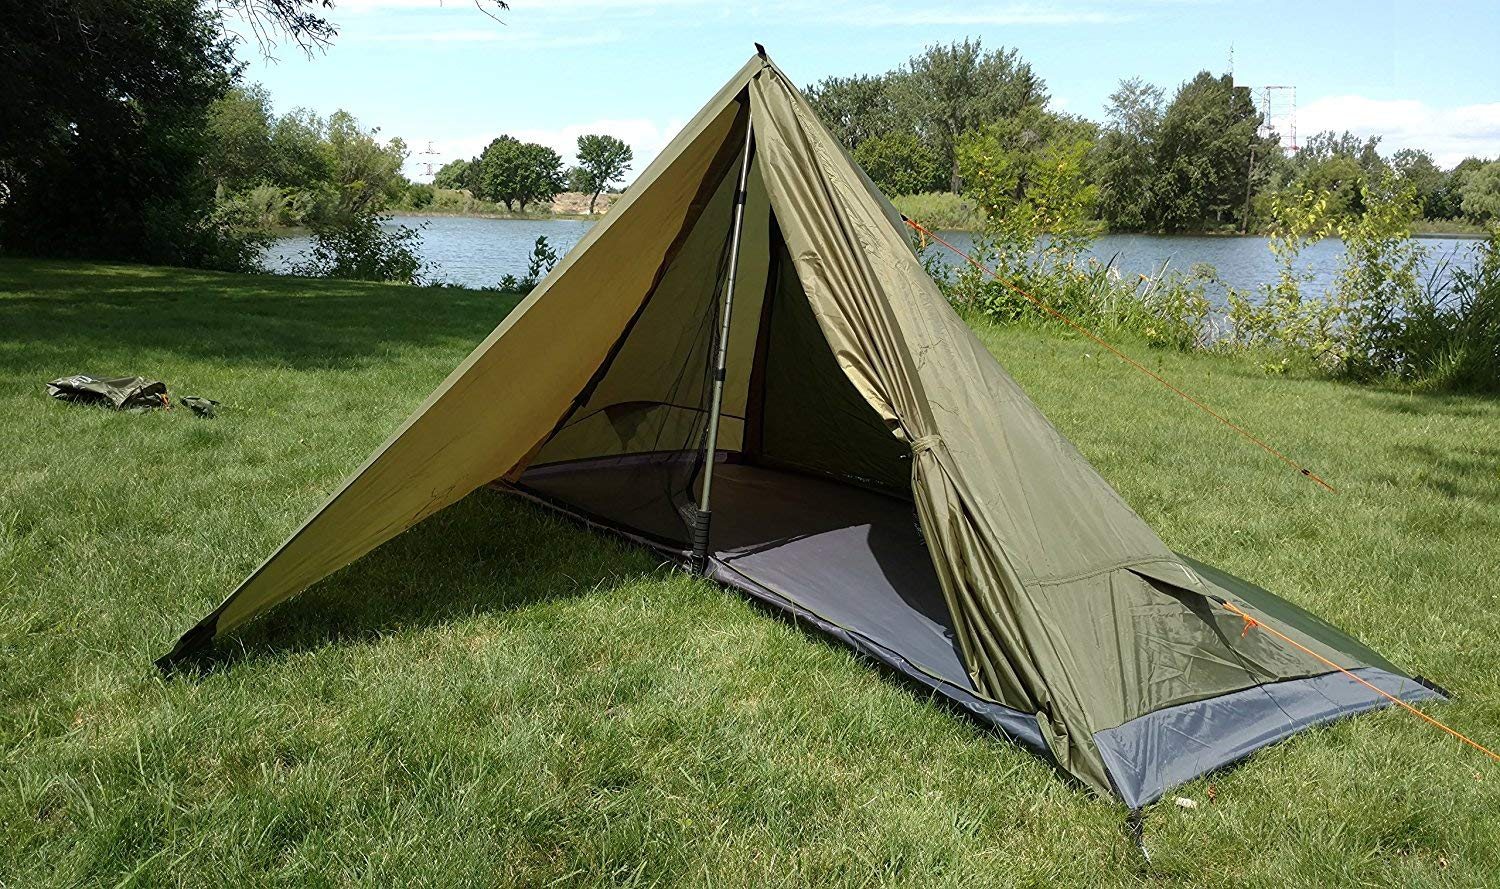 River Country Products Trekker Tent 1 Combo Pack with Trekking Poles, Ultralight Backpacking Tent